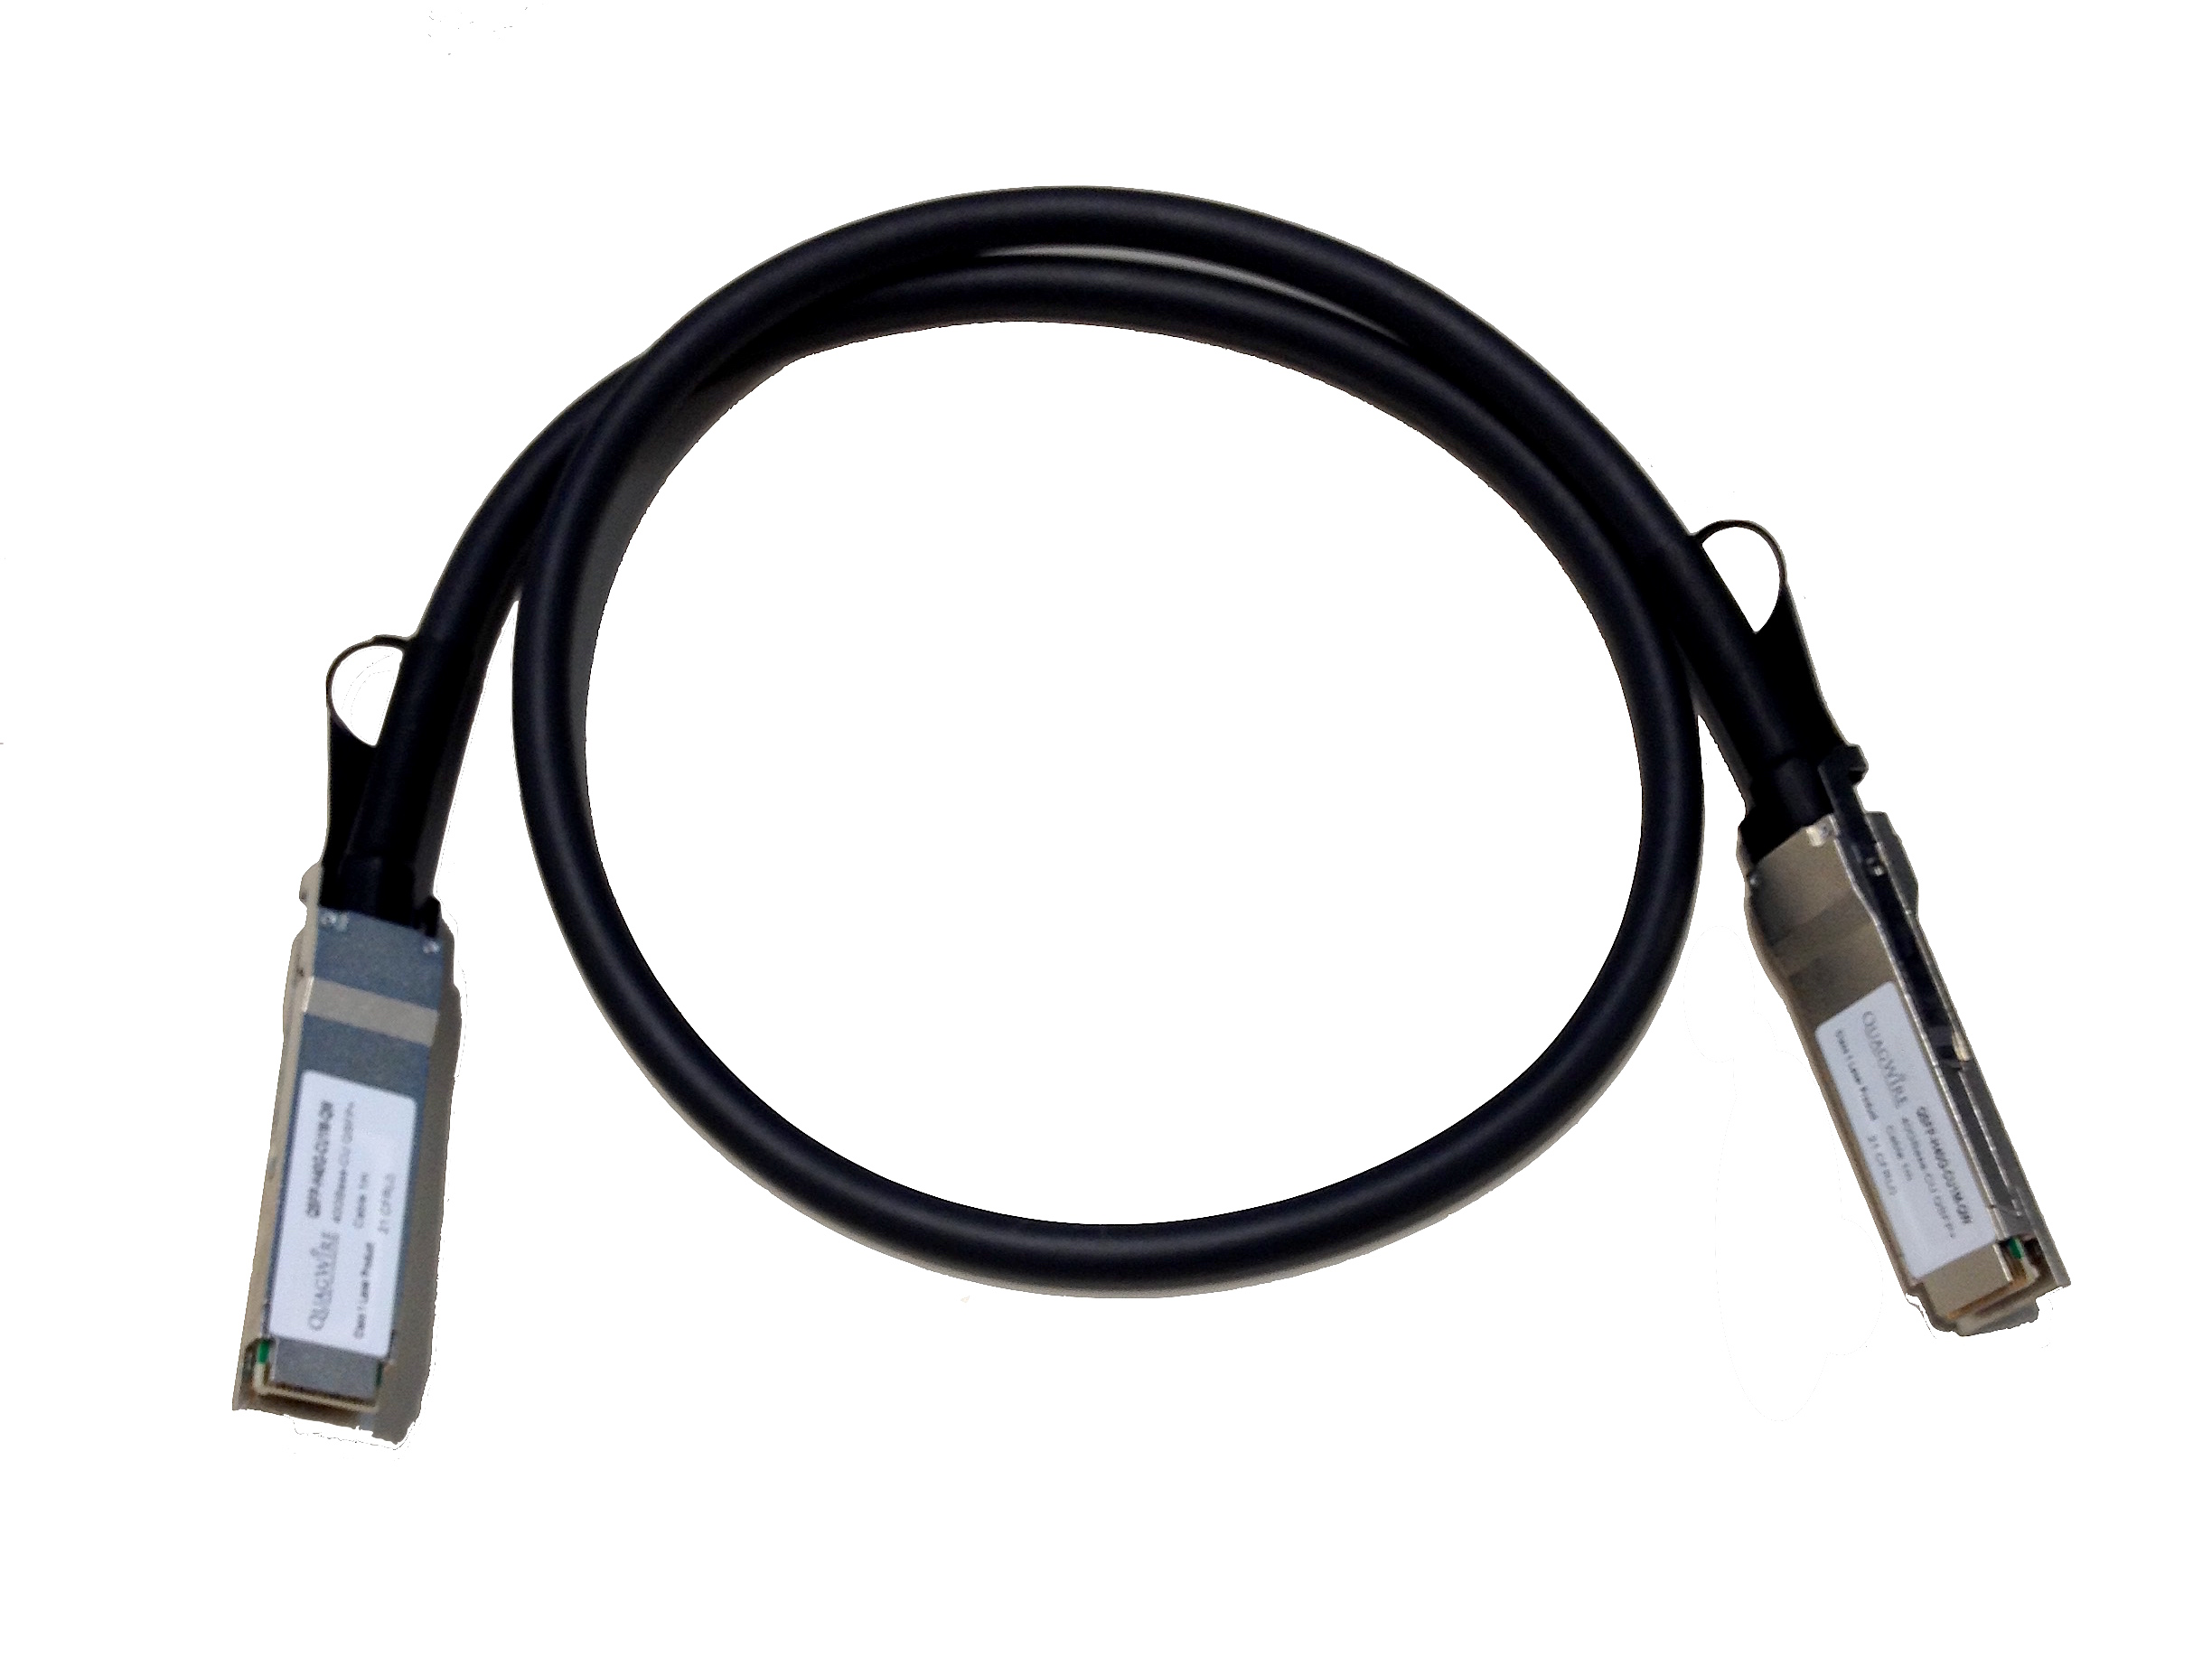 Brocade 57-1000274-01 SFP+ 10G 10m AOC Active Optical Cable (57-1000274-01 Compatible)